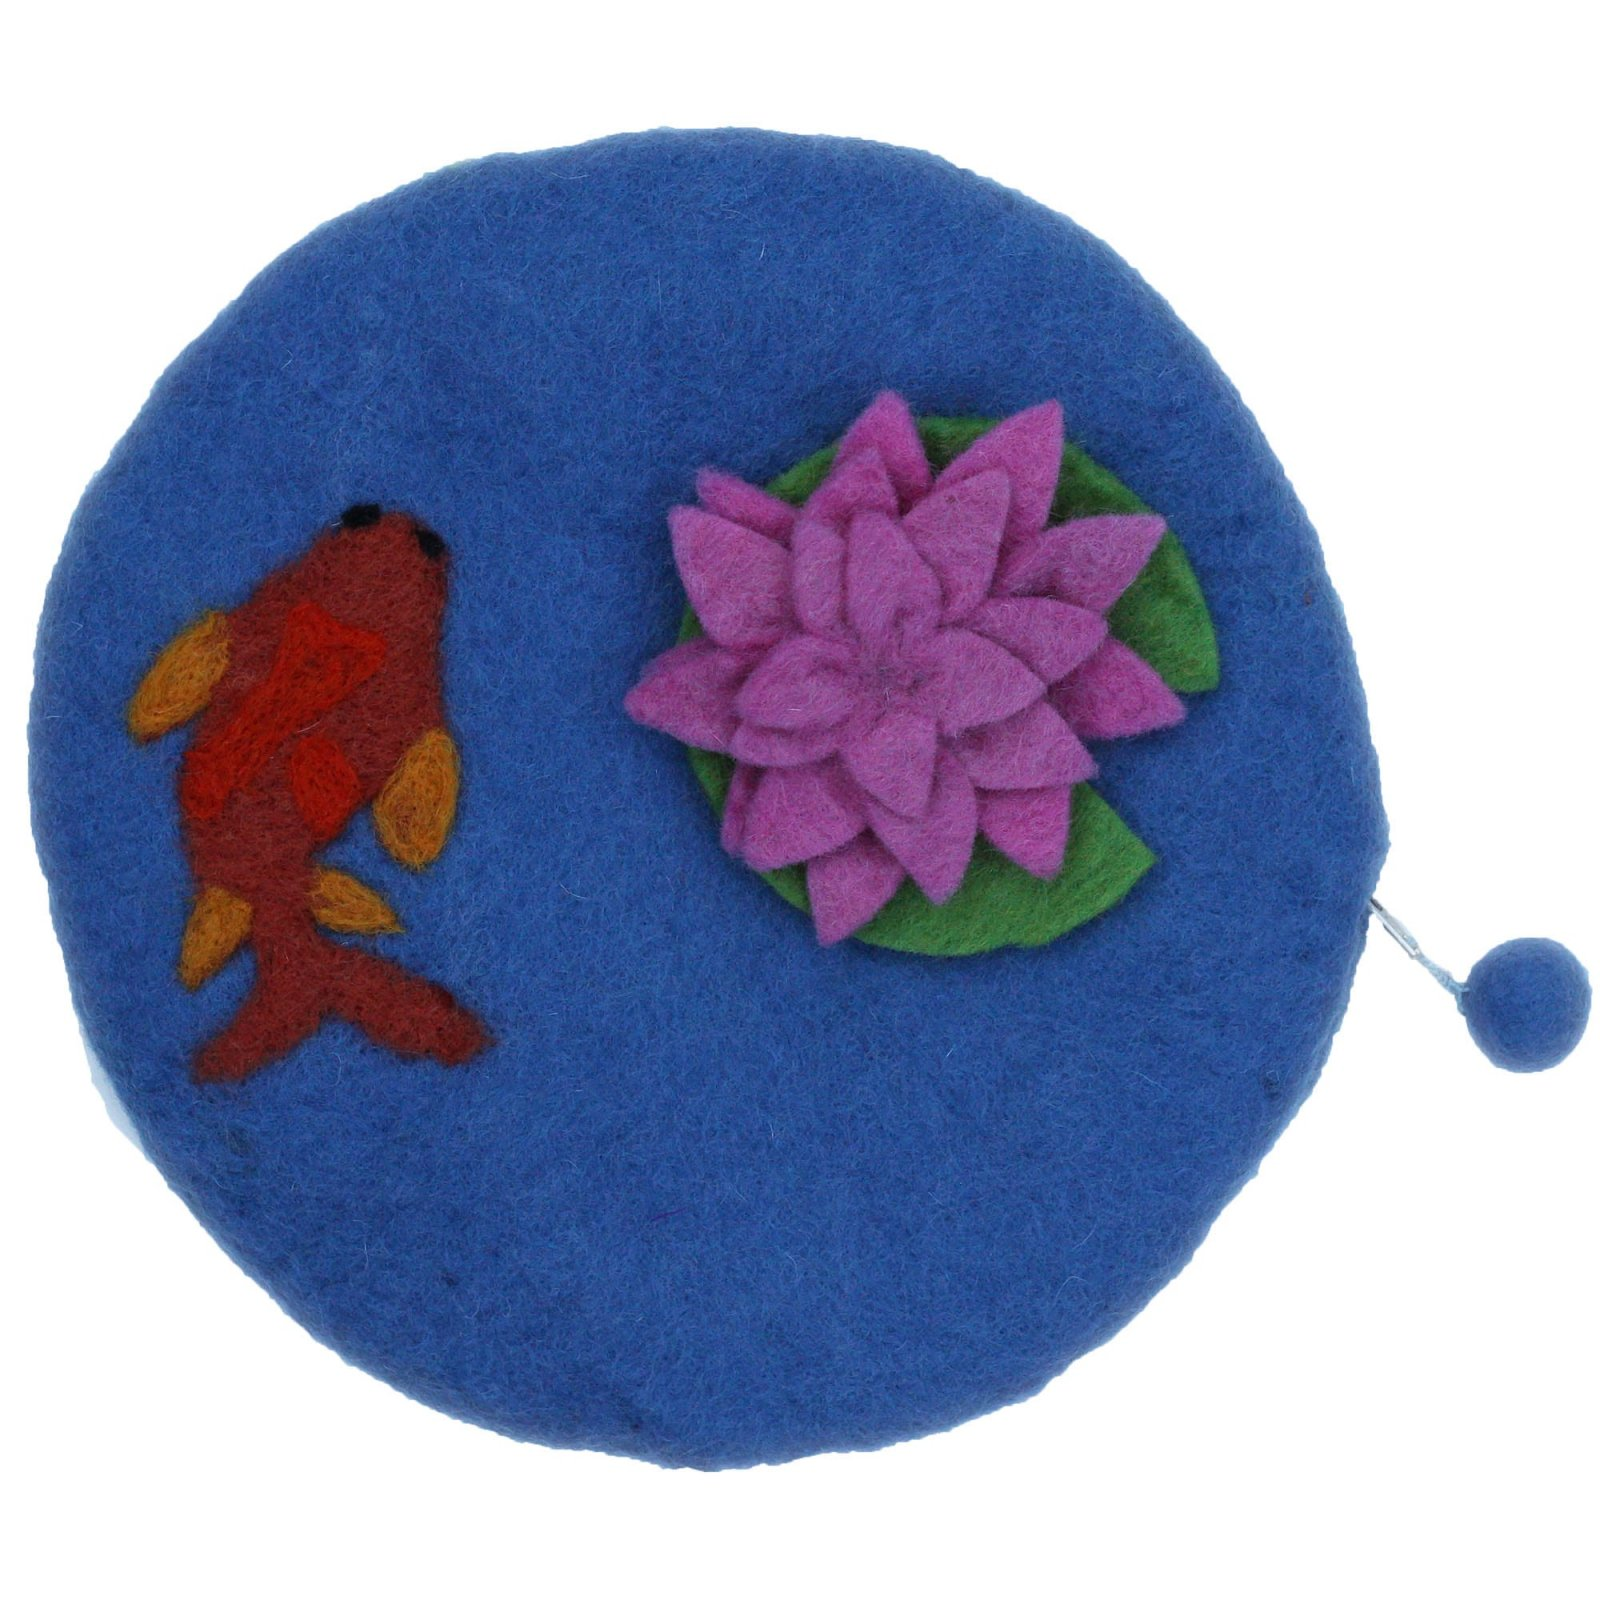 Frabjous Fibers Felted Bag - Koi Pond Dark Blue